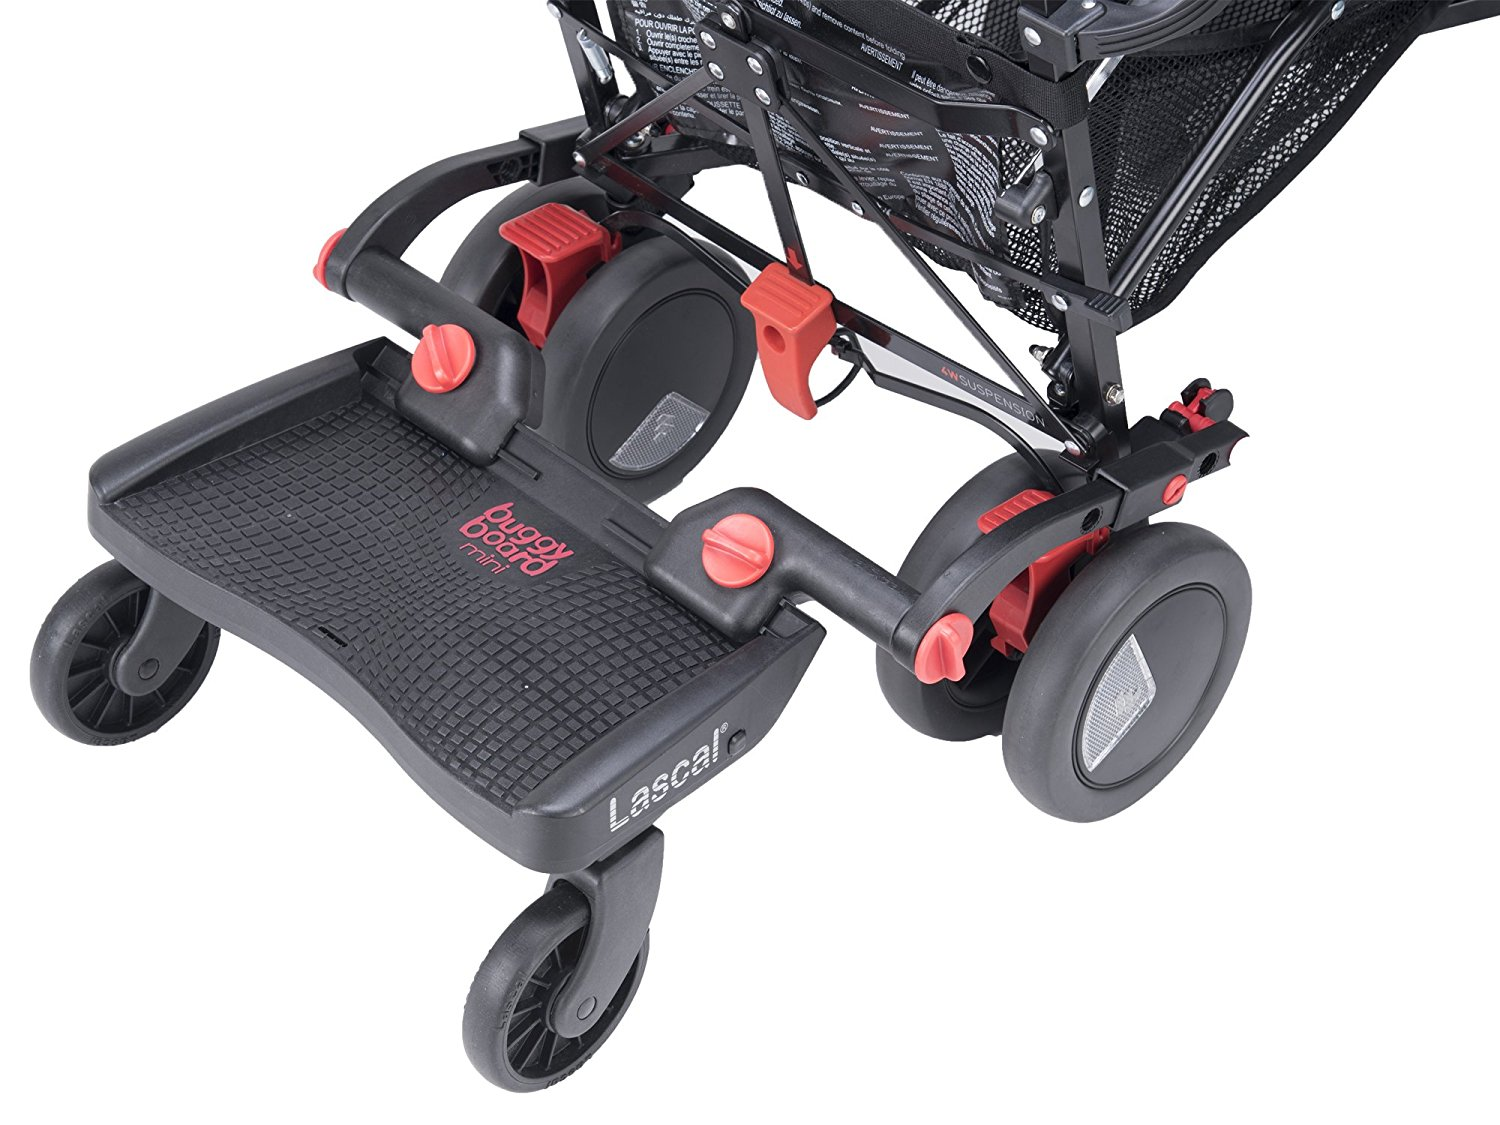 Lascal Buggy Board   from £18.75